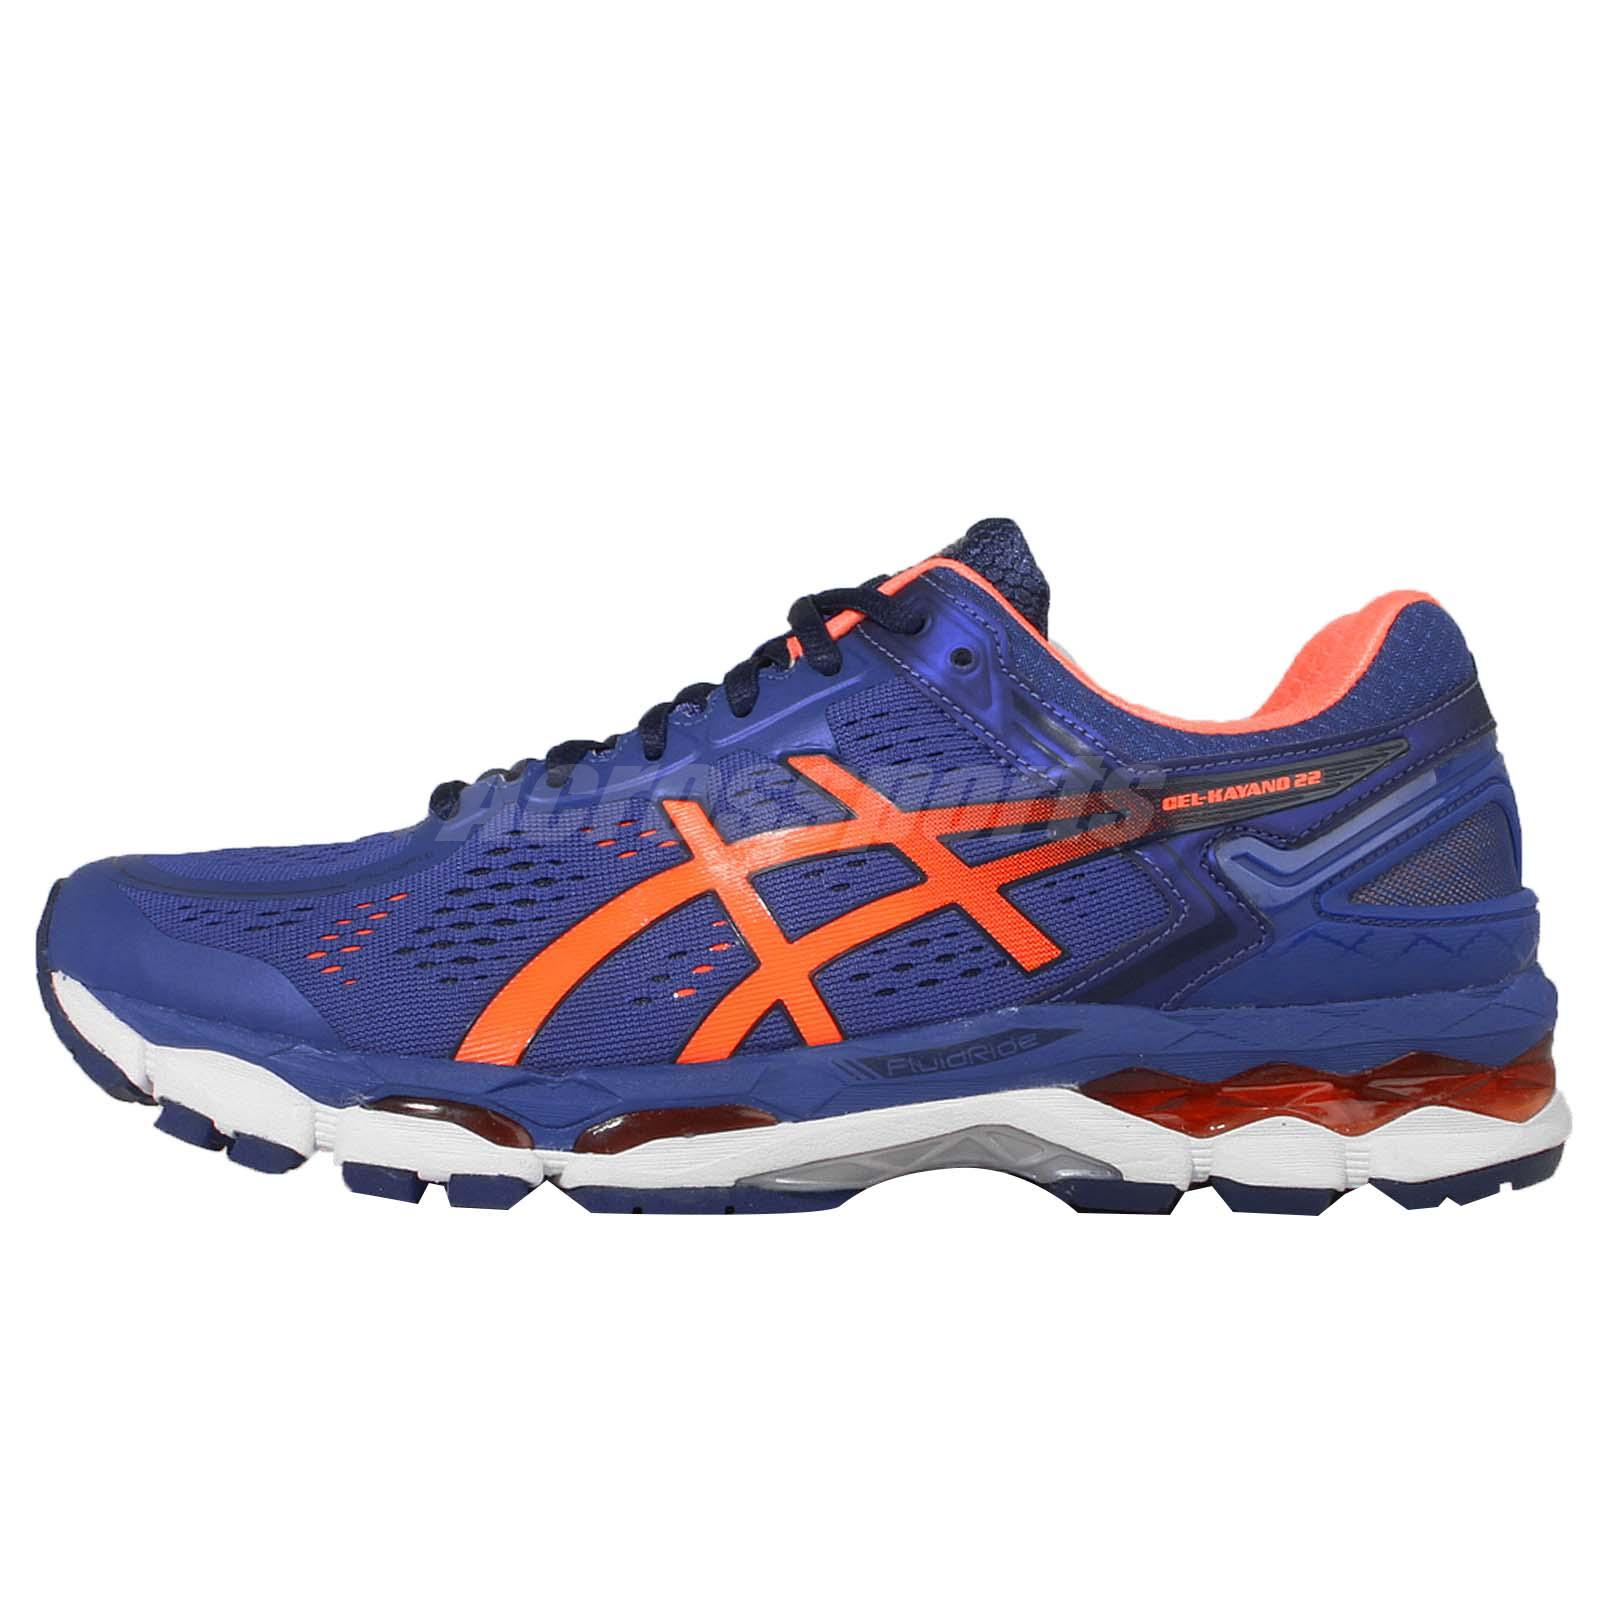 asics gel kayano 22 indonesia